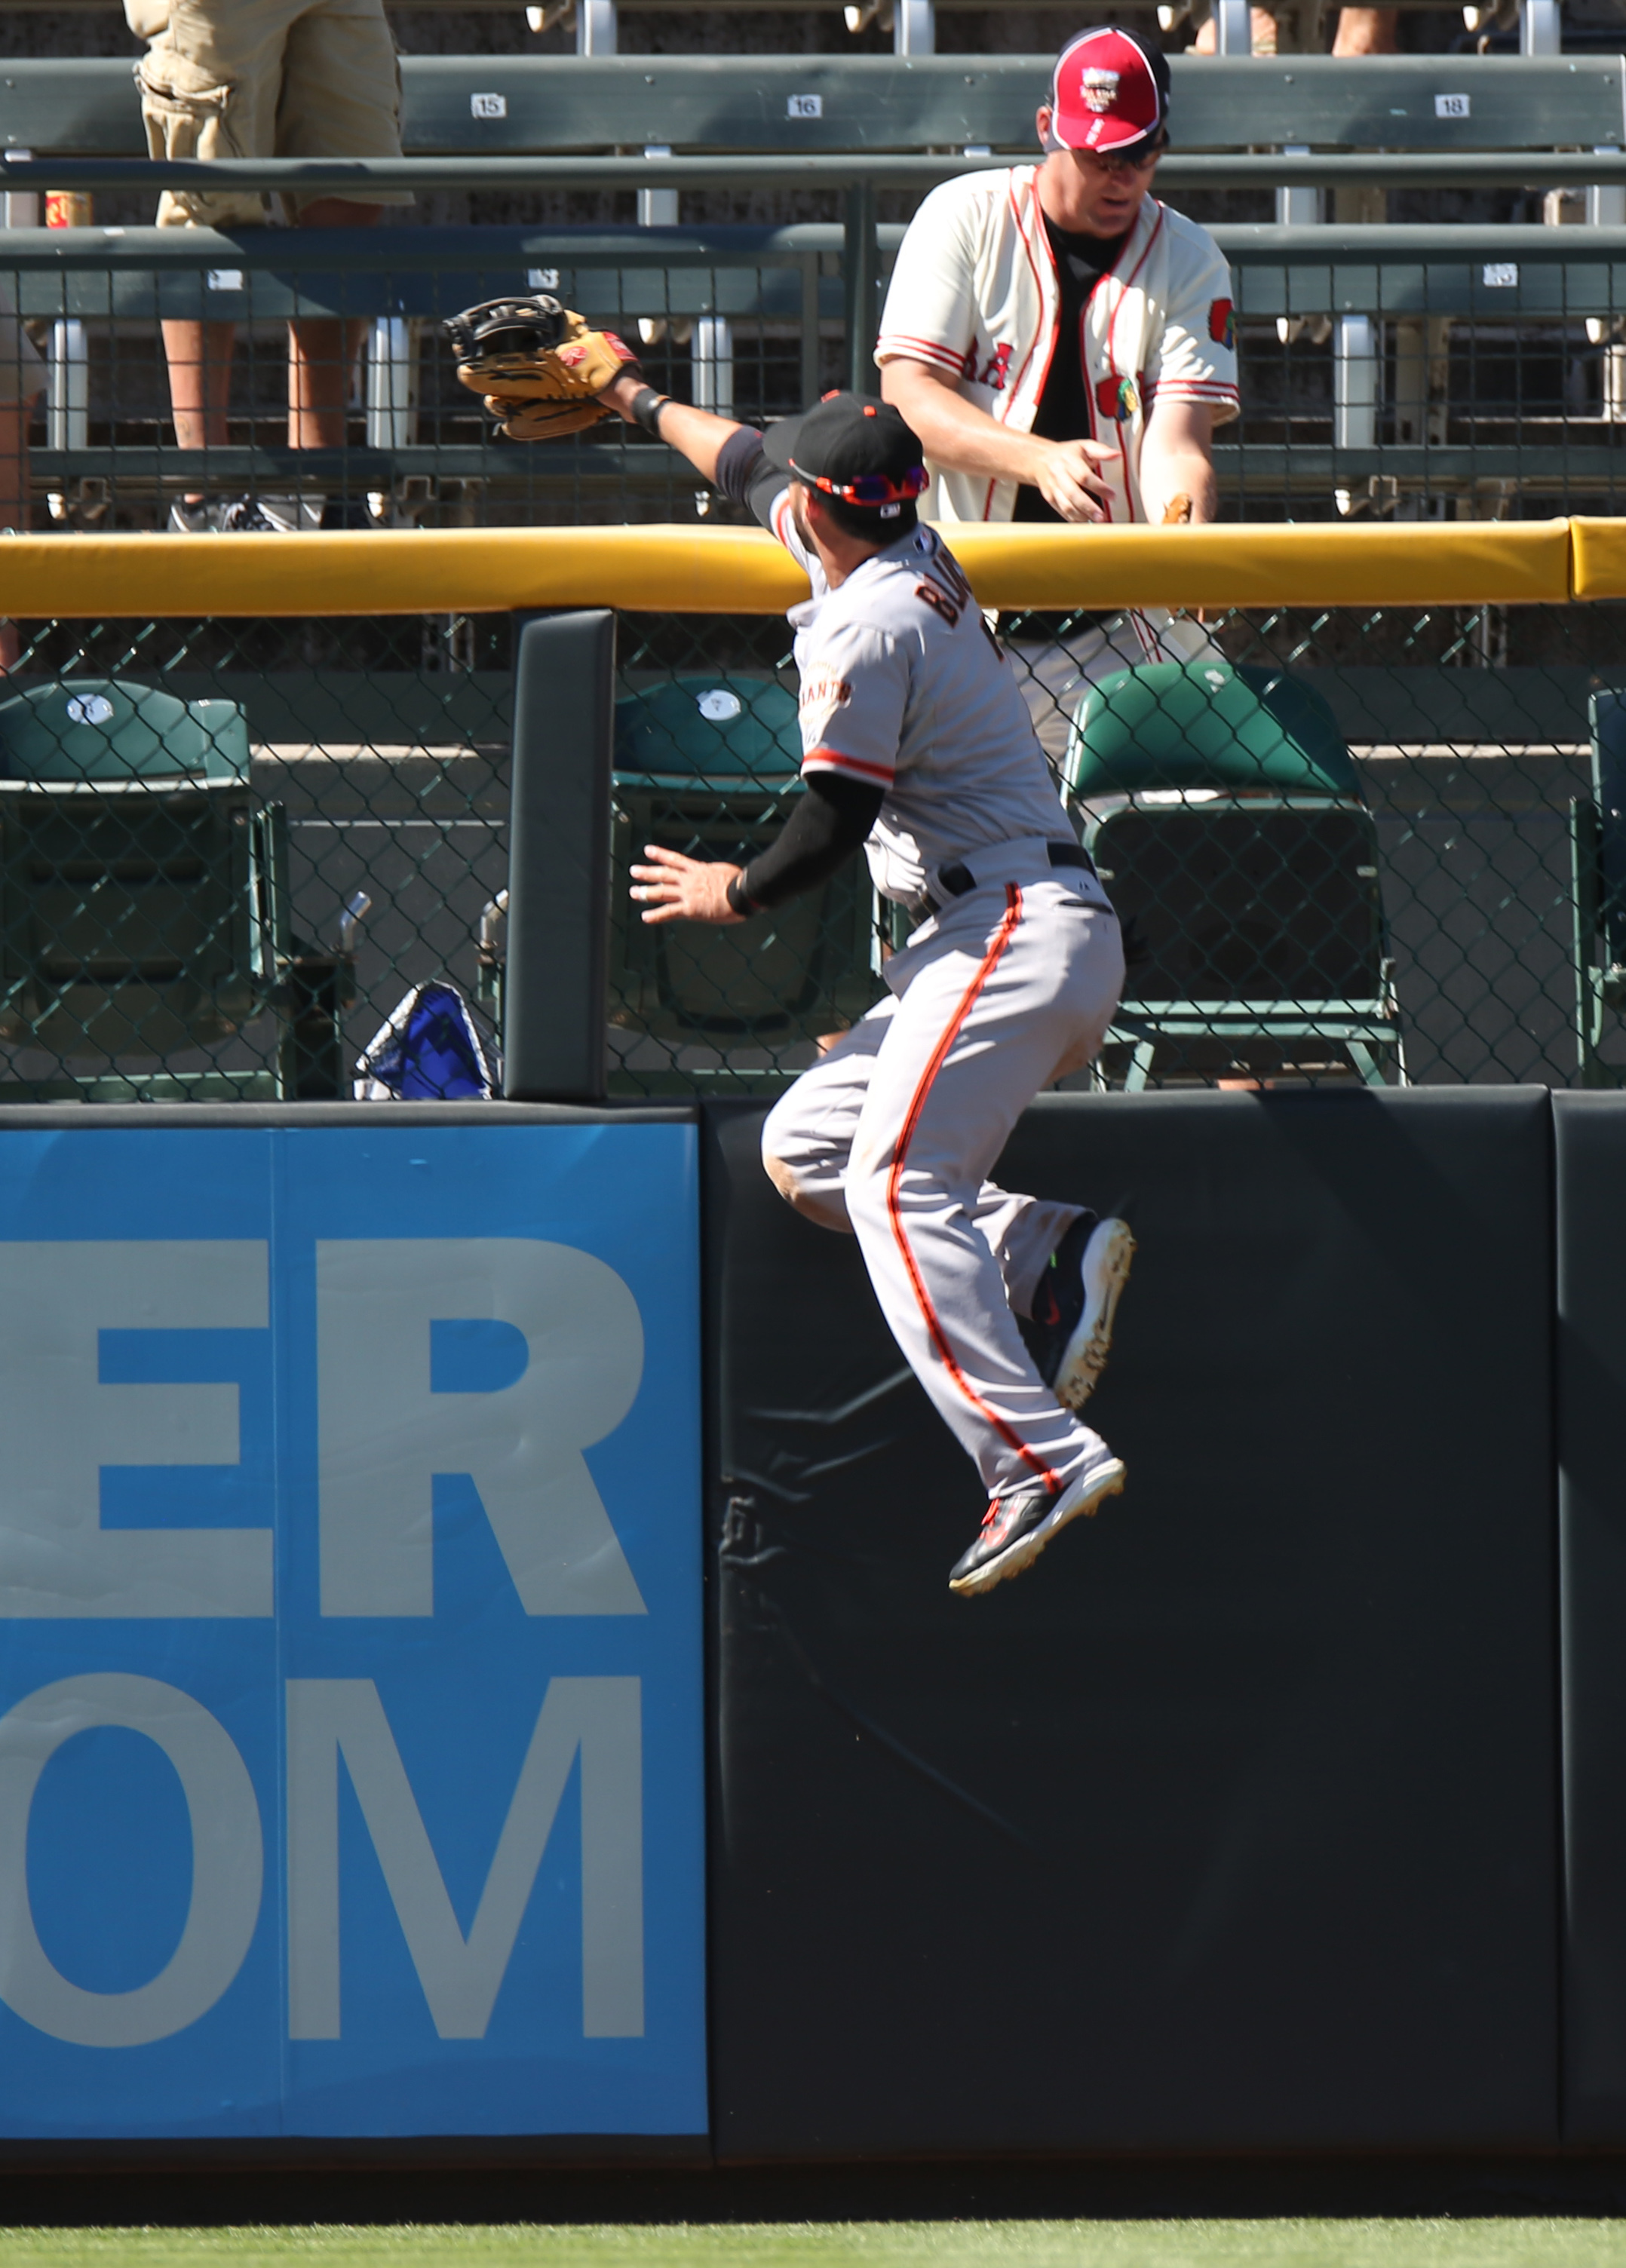 FILE - In this Sept. 3, 2014, file photo, San Francisco Giants left fielder Gregor Blanco climbs the fence in a failed attempt to catch a three-run home run by Colorado Rockies' Nolan Arenado in the fifth inning of the Rockies' 9-2 victory in a baseball g